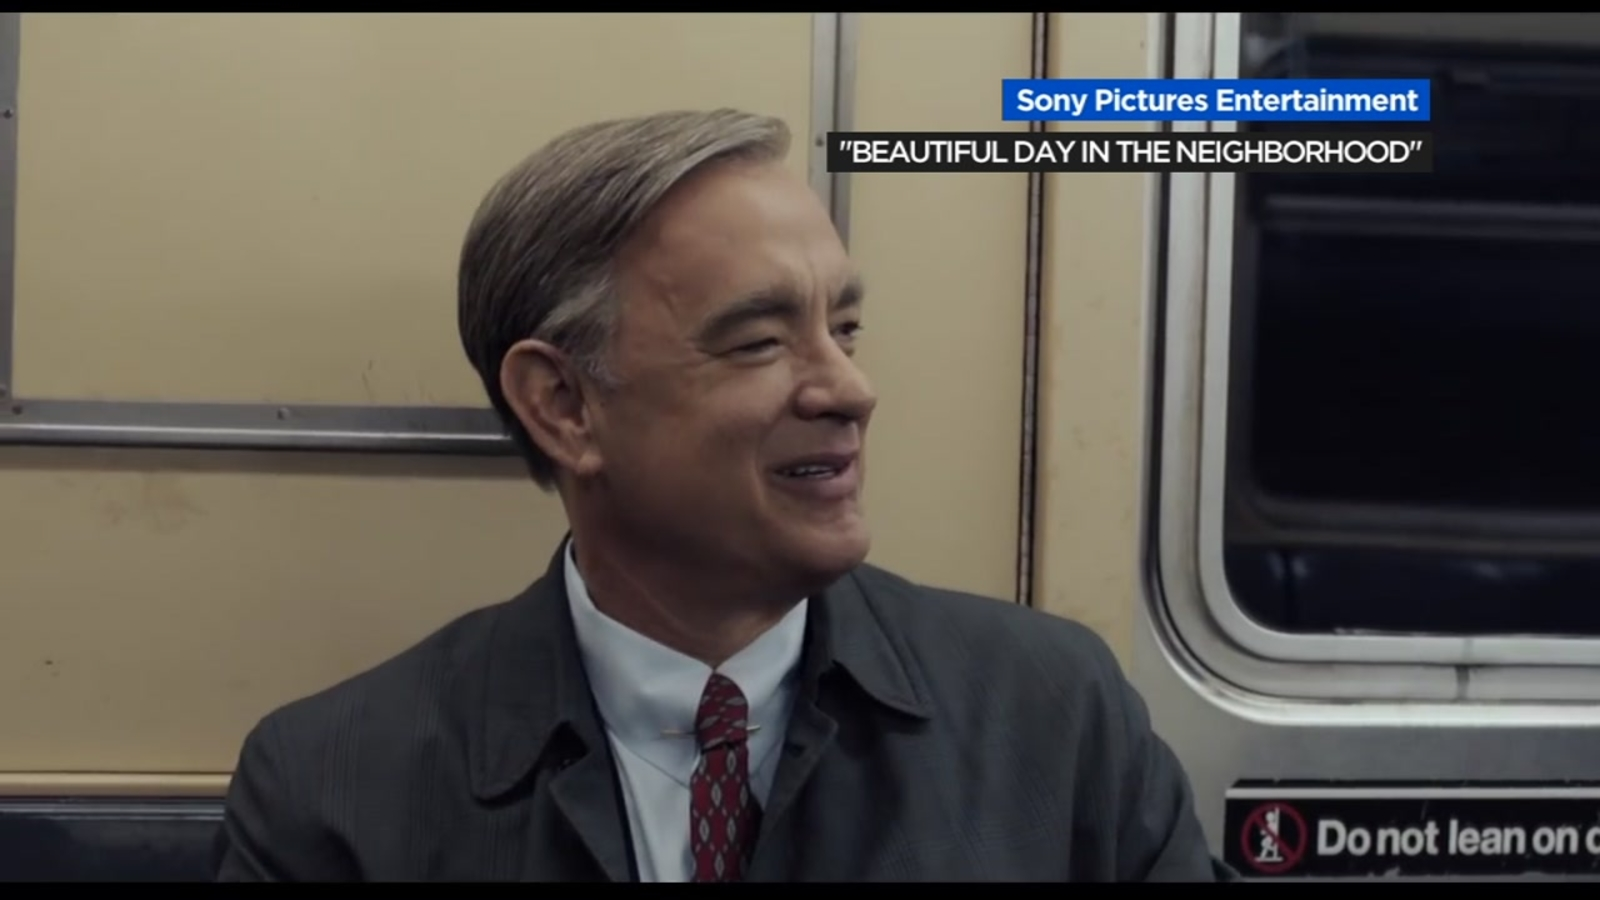 Watch Tom Hanks As Mister Rogers In New Movie Trailer For Beautiful Day In The Neighborhood Abc7 New York